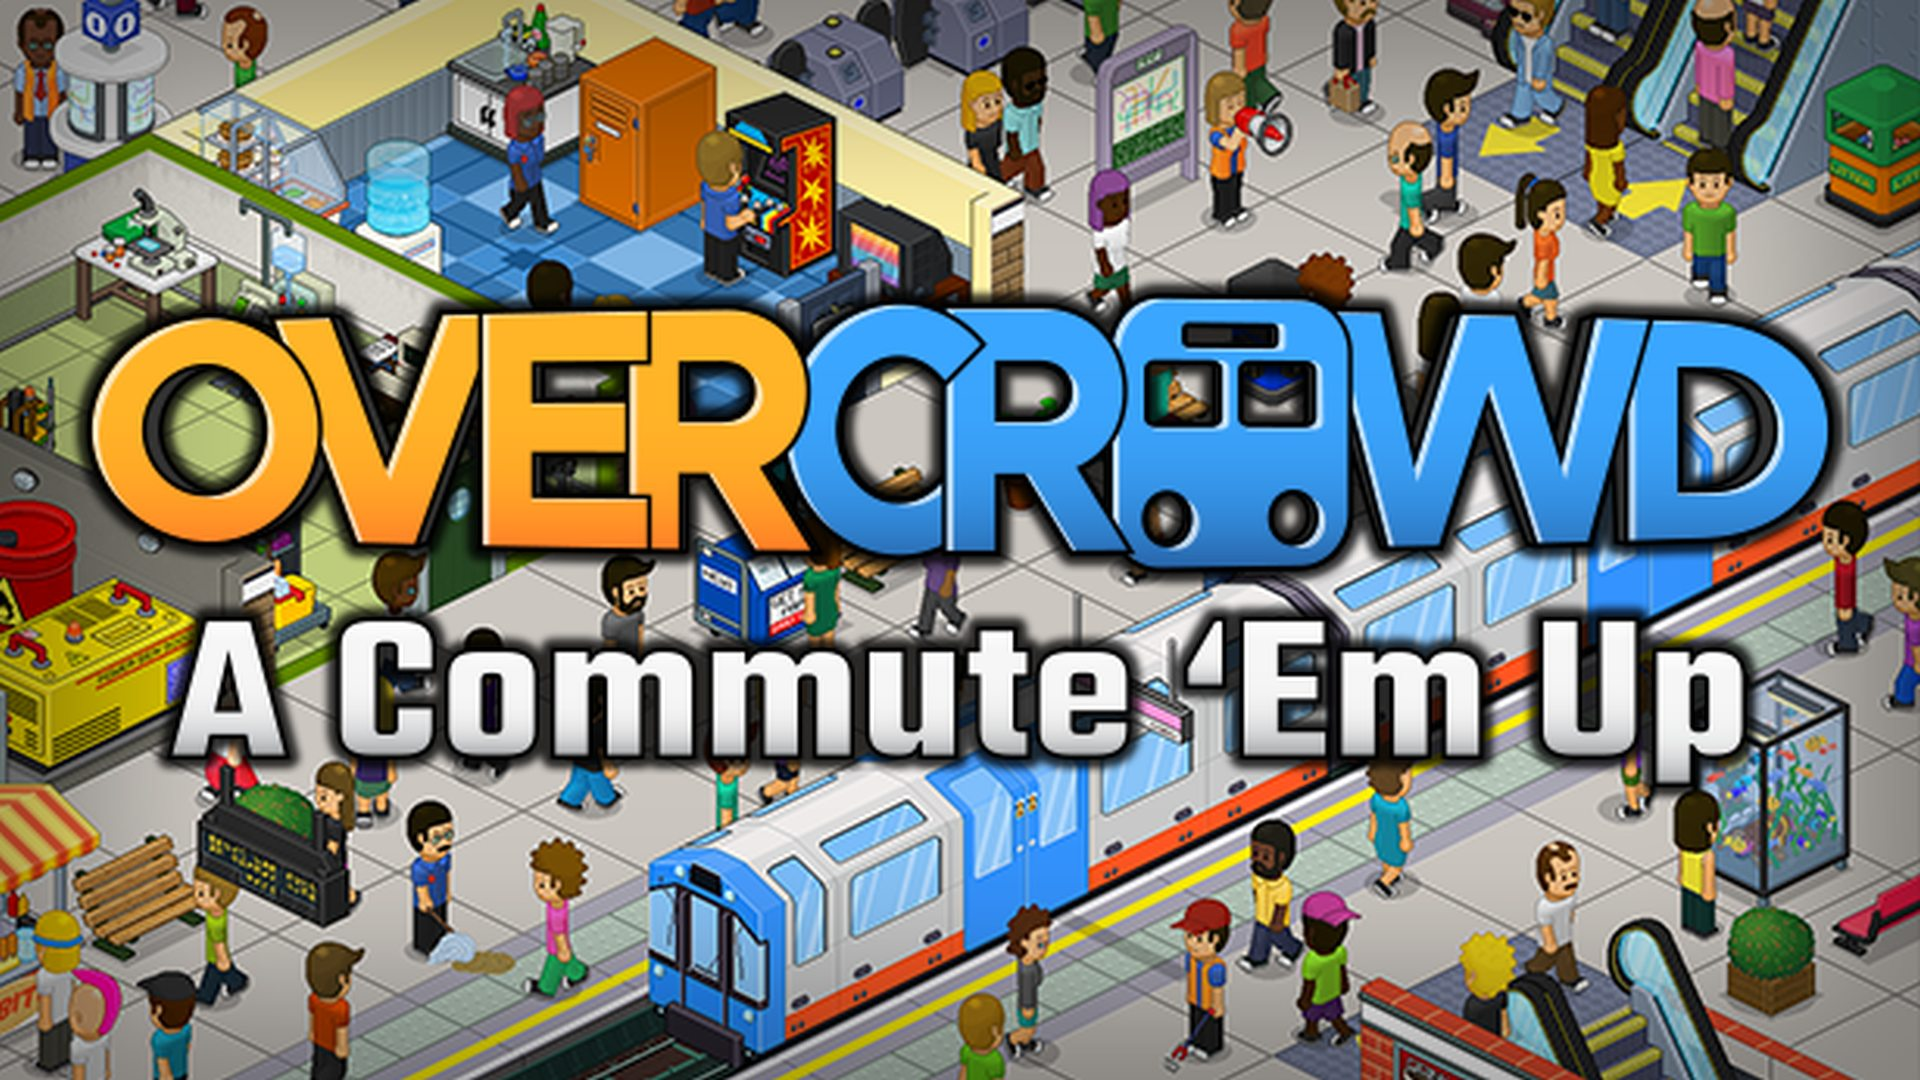 Overcrowd: A Commute 'Em Up | SquarePlay Games